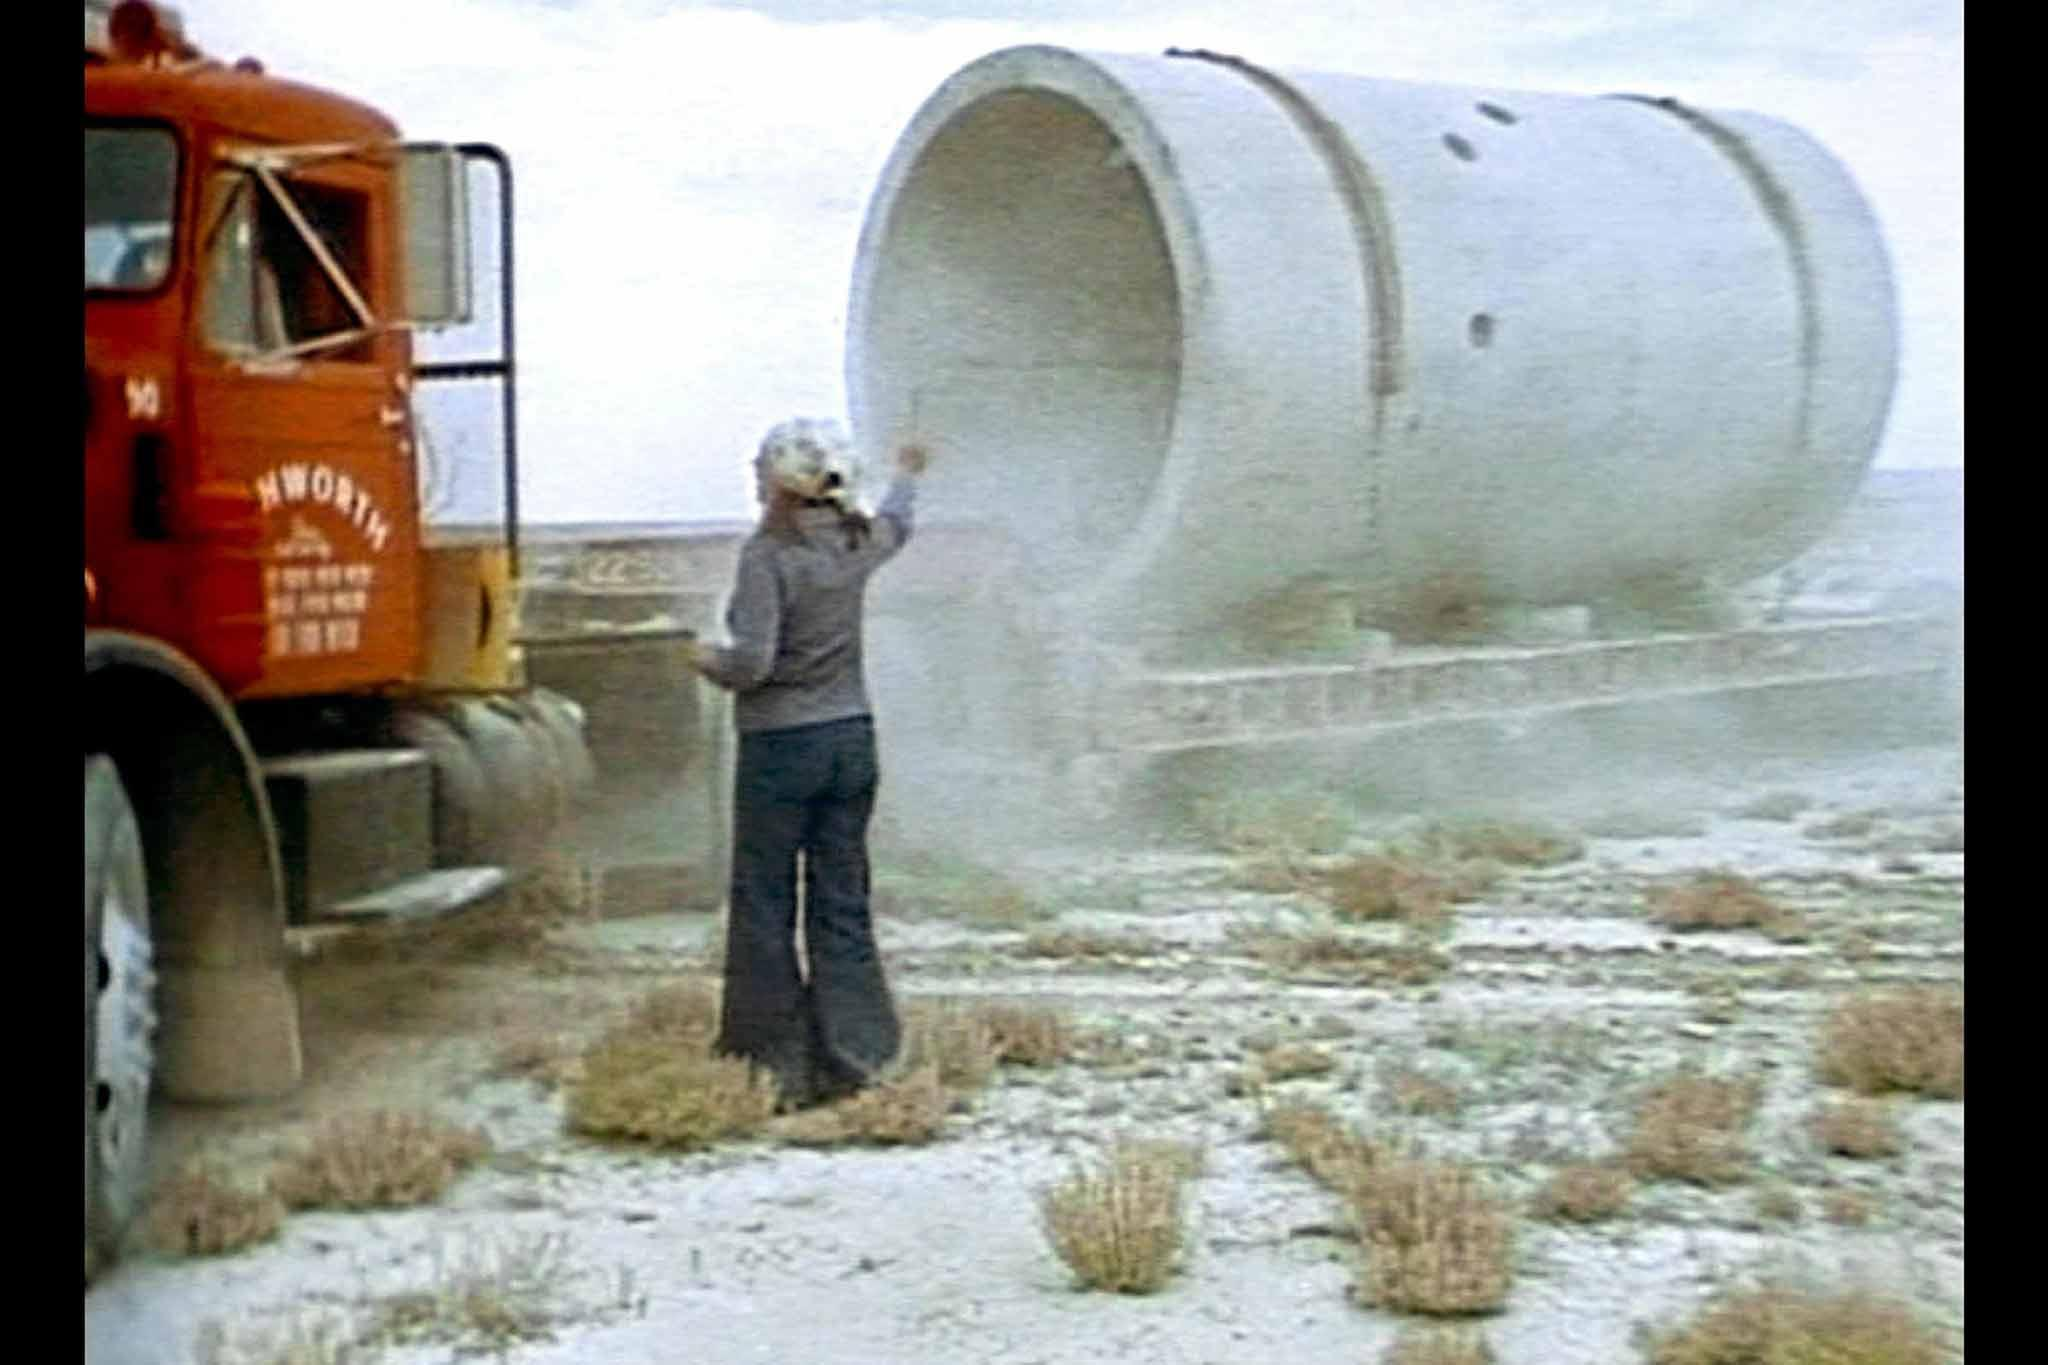 A film still from the construction of Holt's Sun Tunnels from the film, Sun Tunnels showing Holt directing a truck driver who is delivering one of the concrete tunnels.